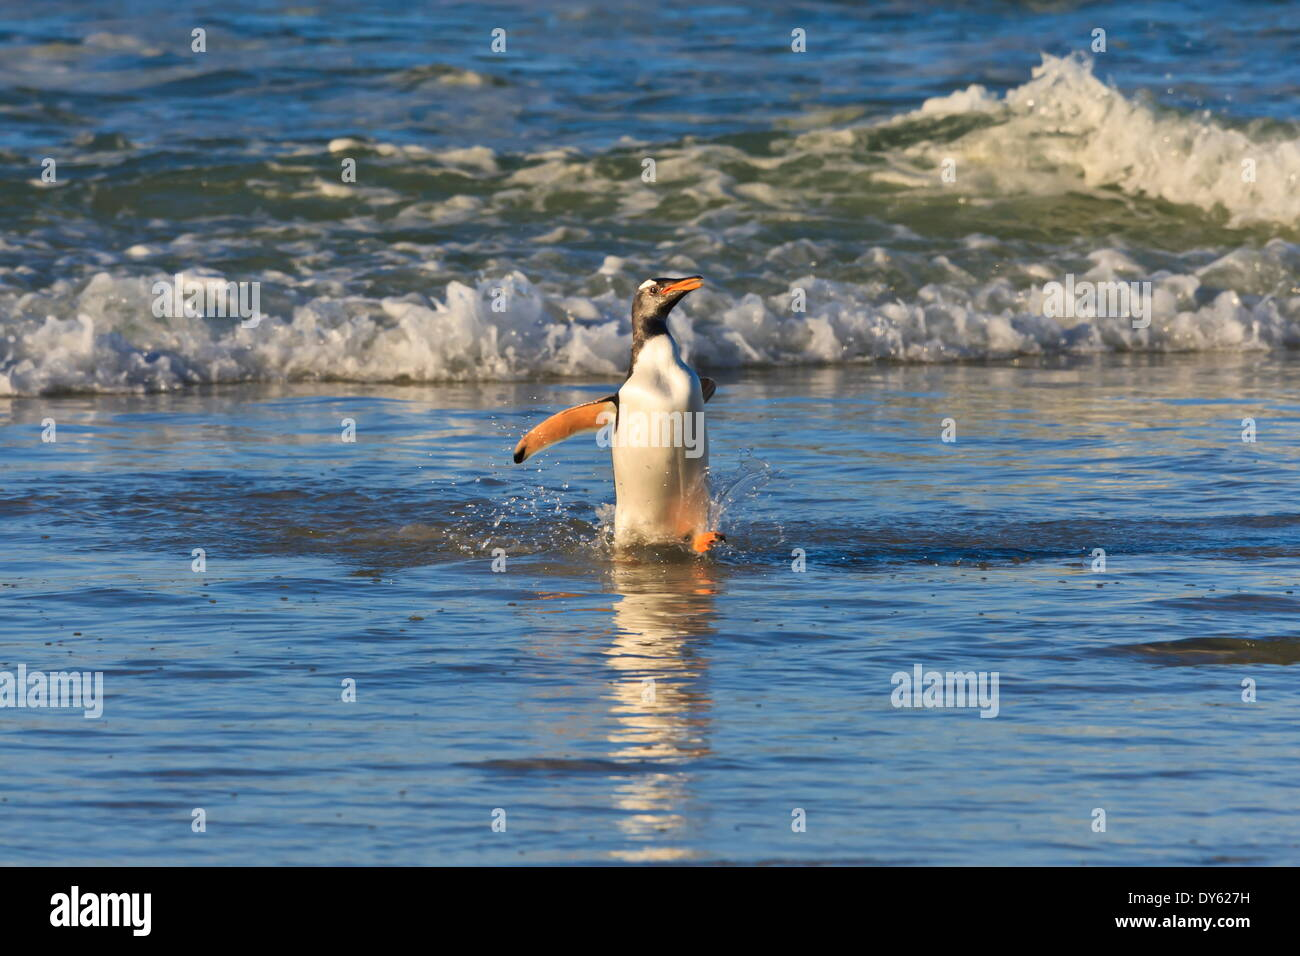 Gentoo penguin (Pygoscelis papua) emerges from the sea in late afternoon light, The Neck, Saunders Island, Falkland Islands - Stock Image